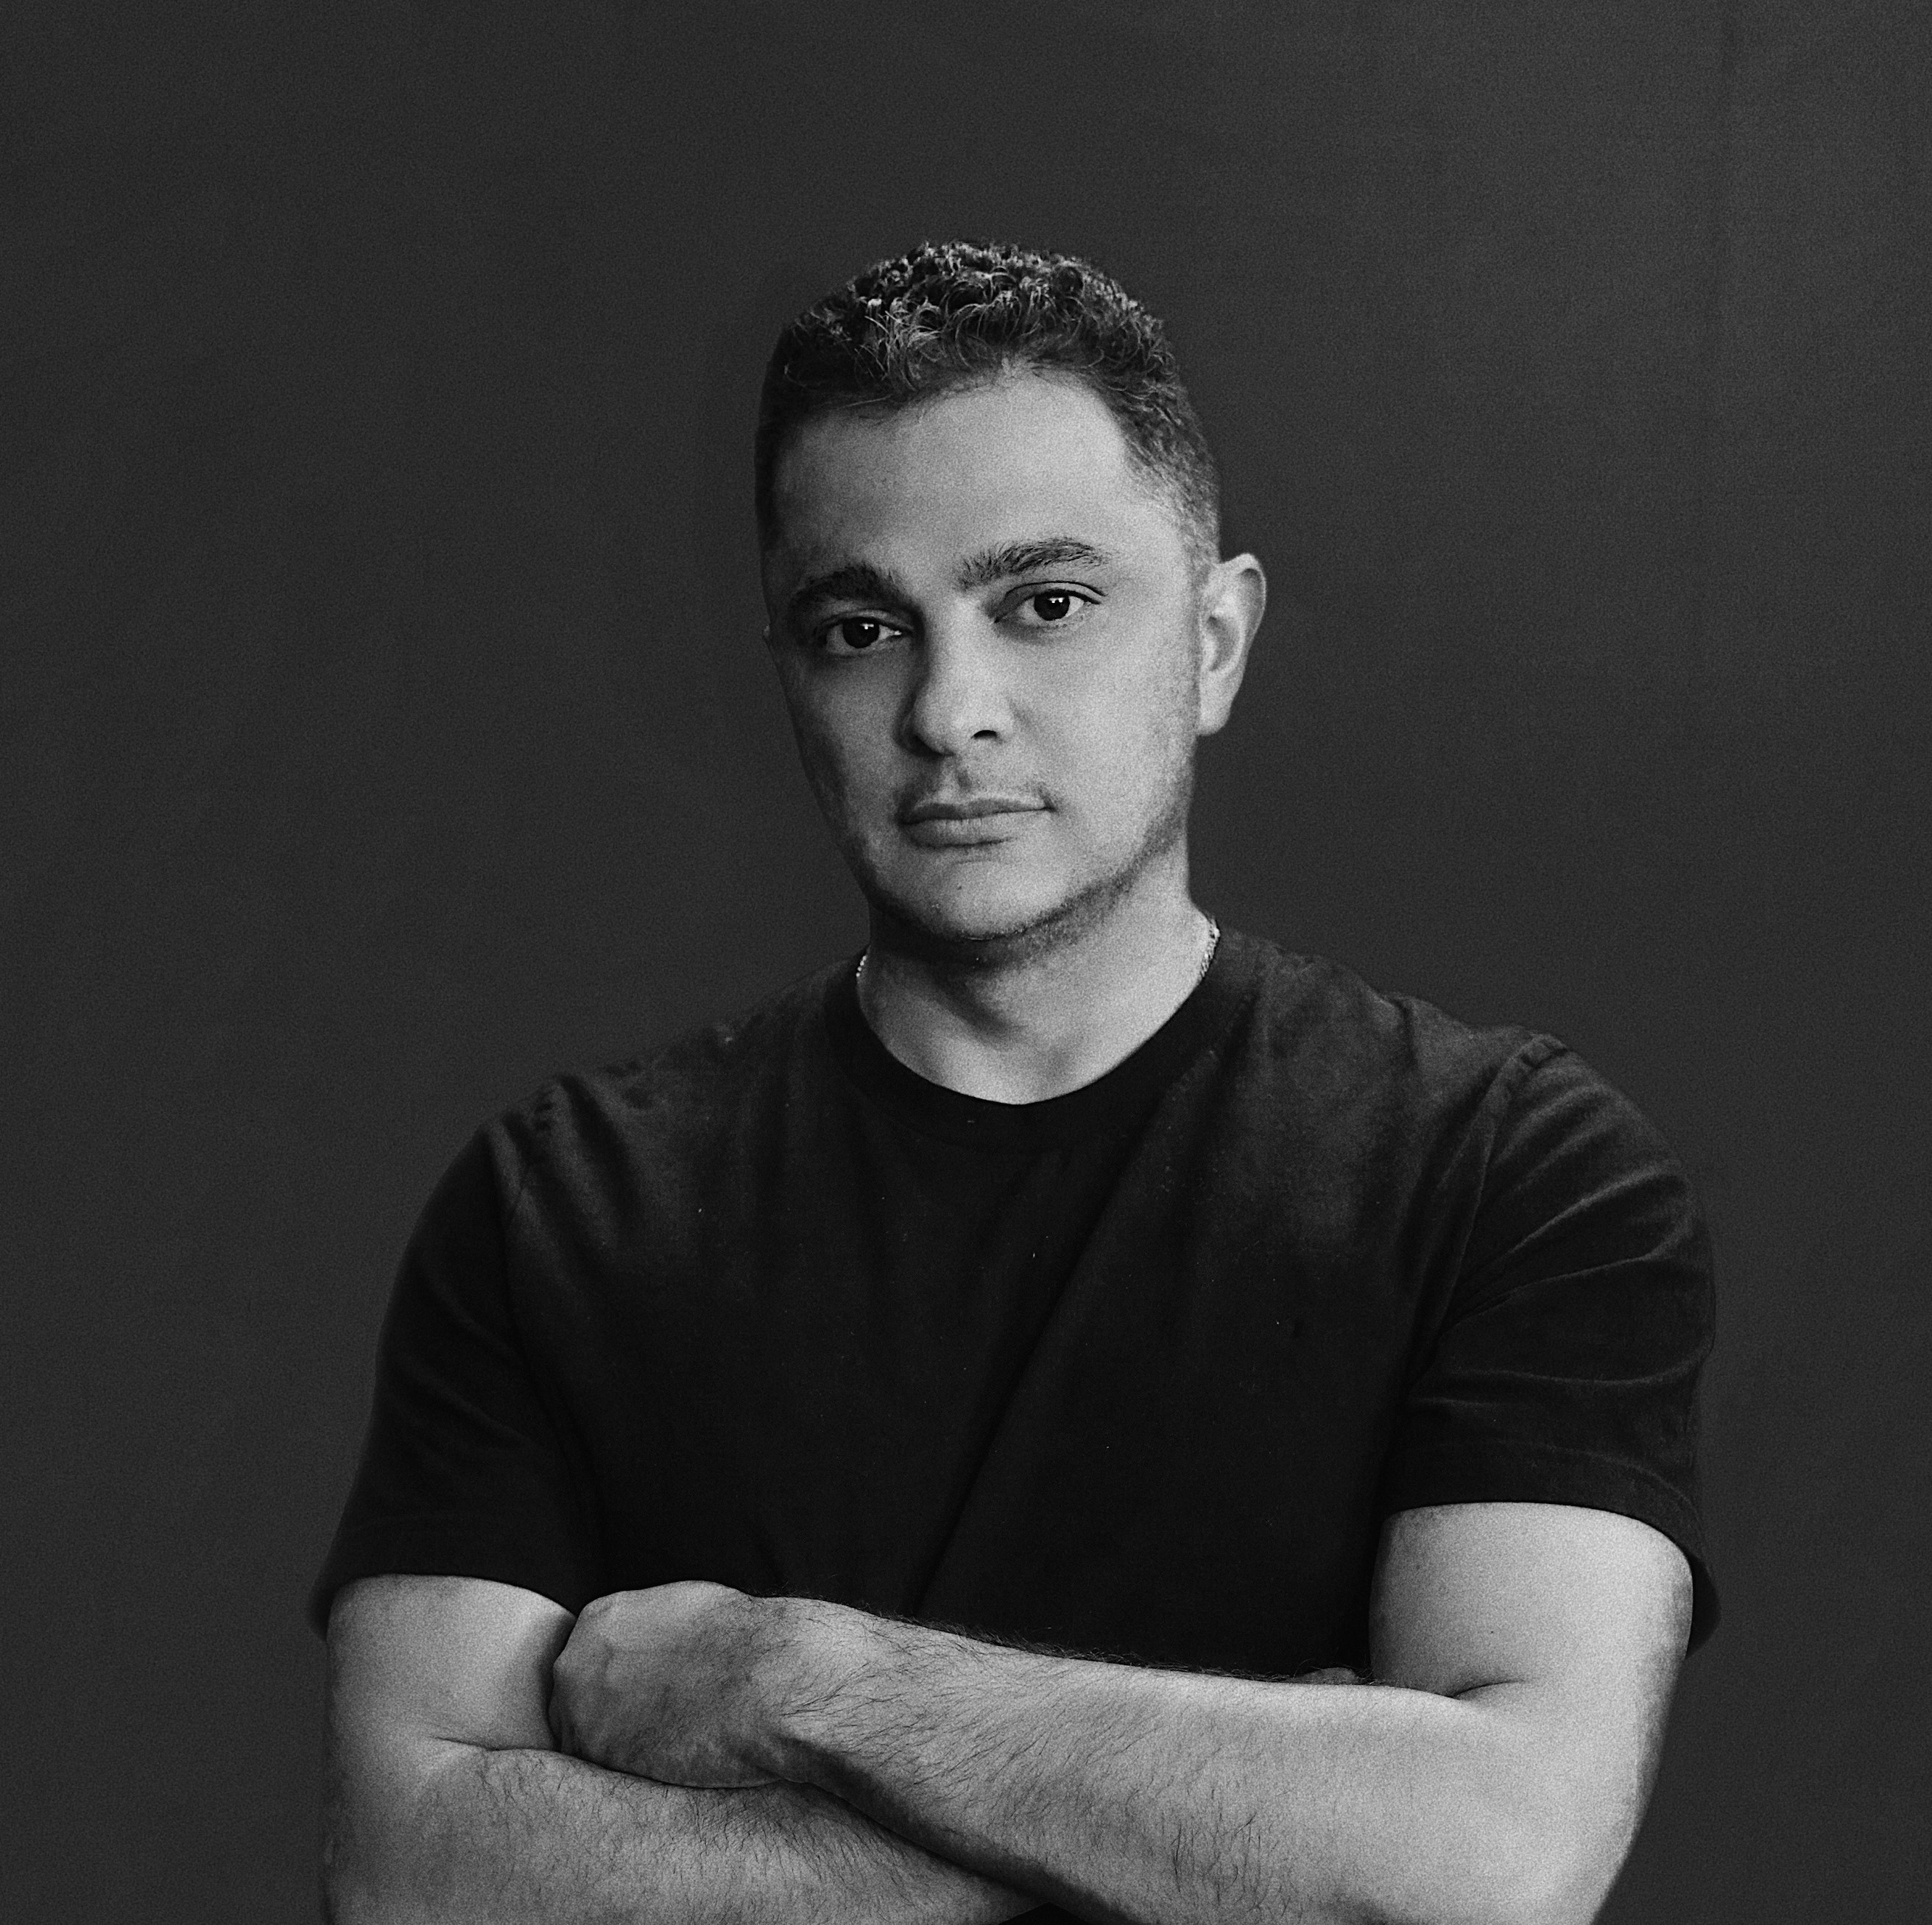 Fintech and the Self-Directed Investor: Bardya Ziaian, CEO of SITTU Group, on How They Intersect